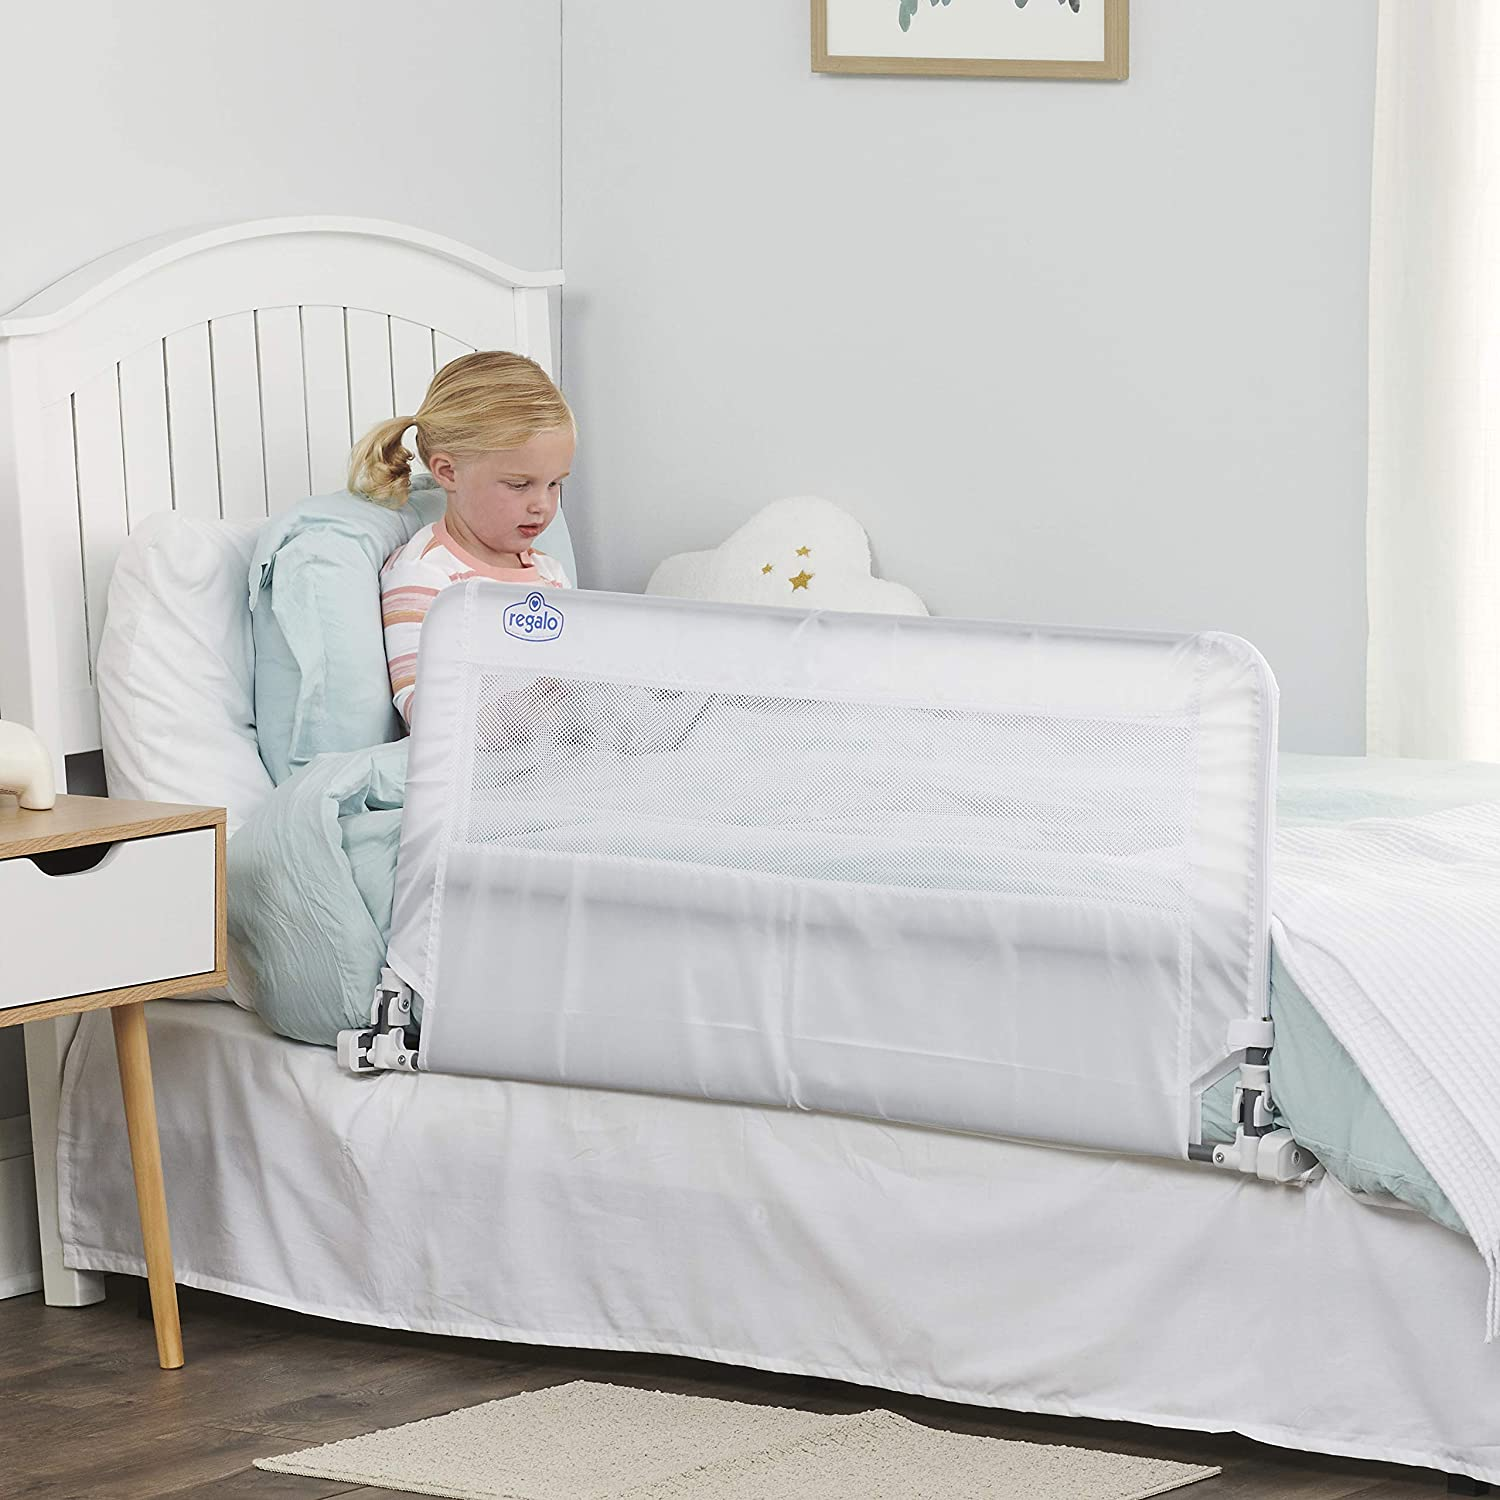 54-Inch Swing Down Extra Long Bed Rail Guard with Reinforced Anchor Safety System